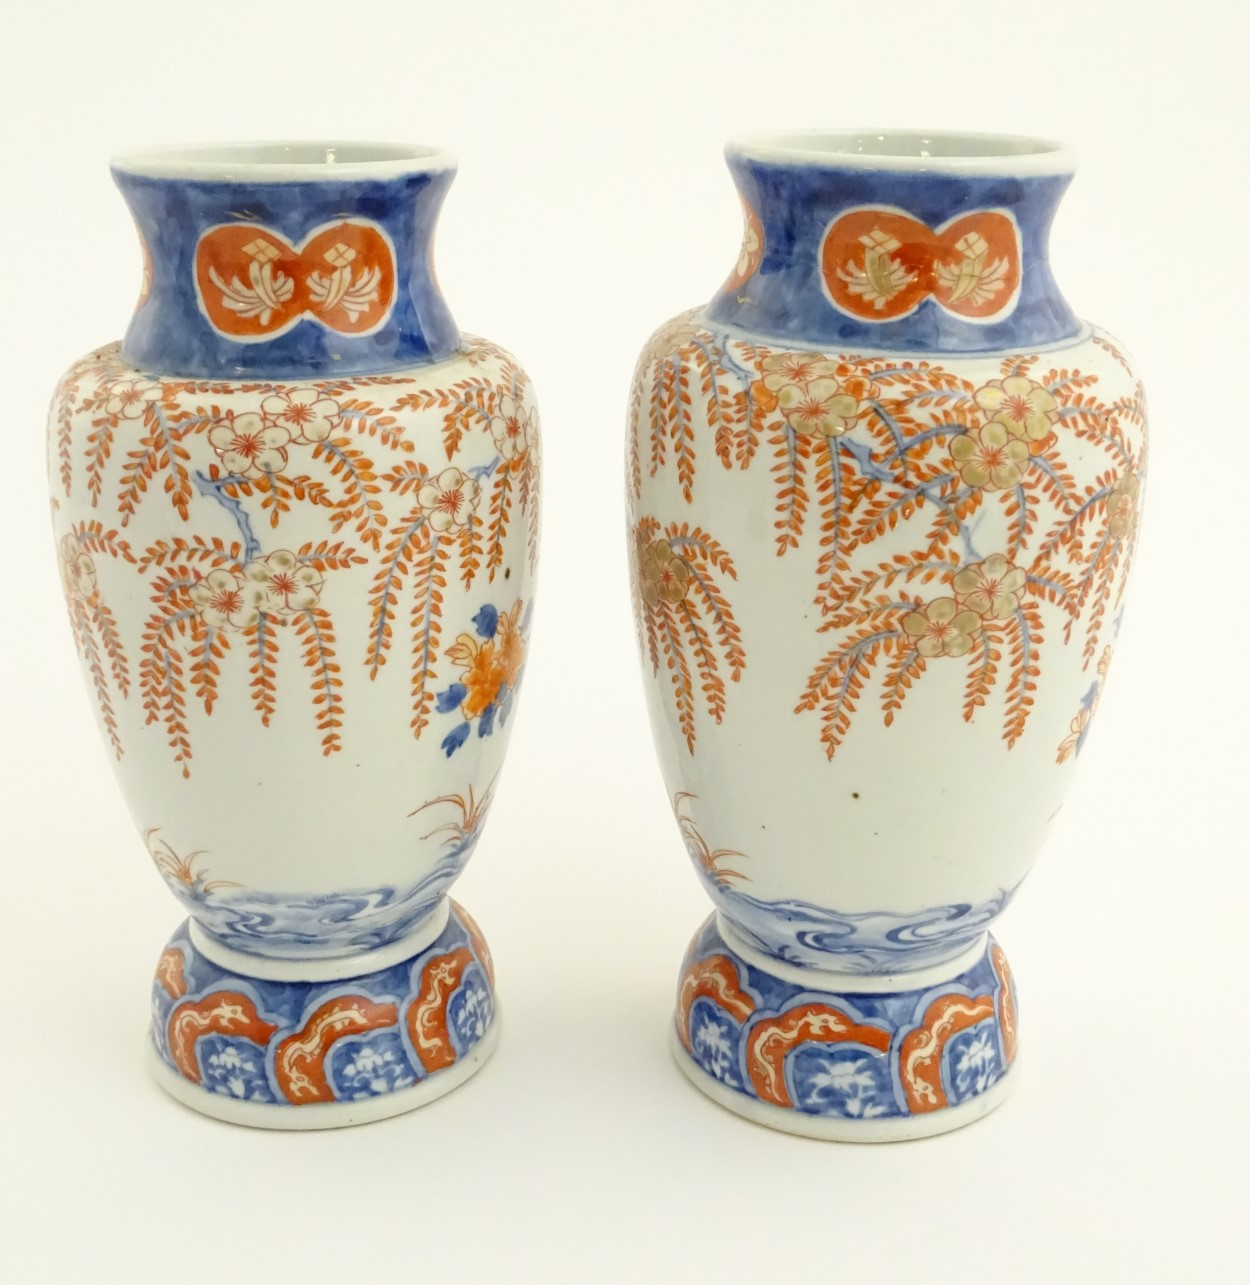 "Lot 24 - Two Imari vases depicting a garden landscape. Approx. 12"" high."